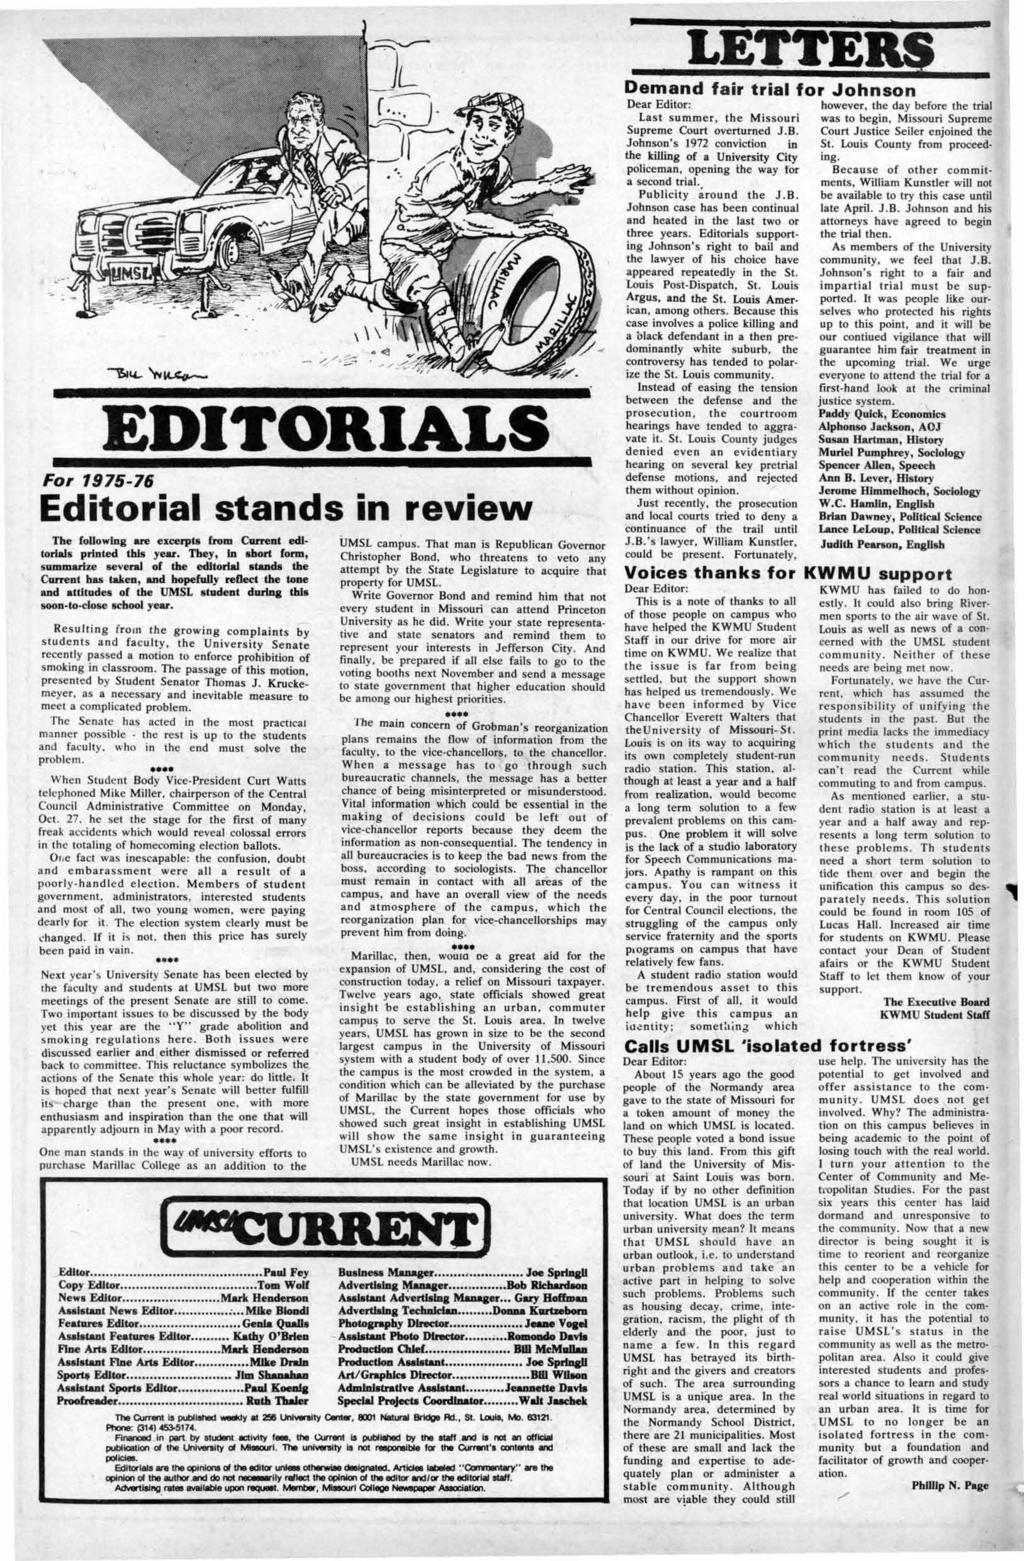 LETTEY EDITORIALS Fo, 197-76 Editorial stands in review The fouowing an excerpts from Current edi torials printed this year.